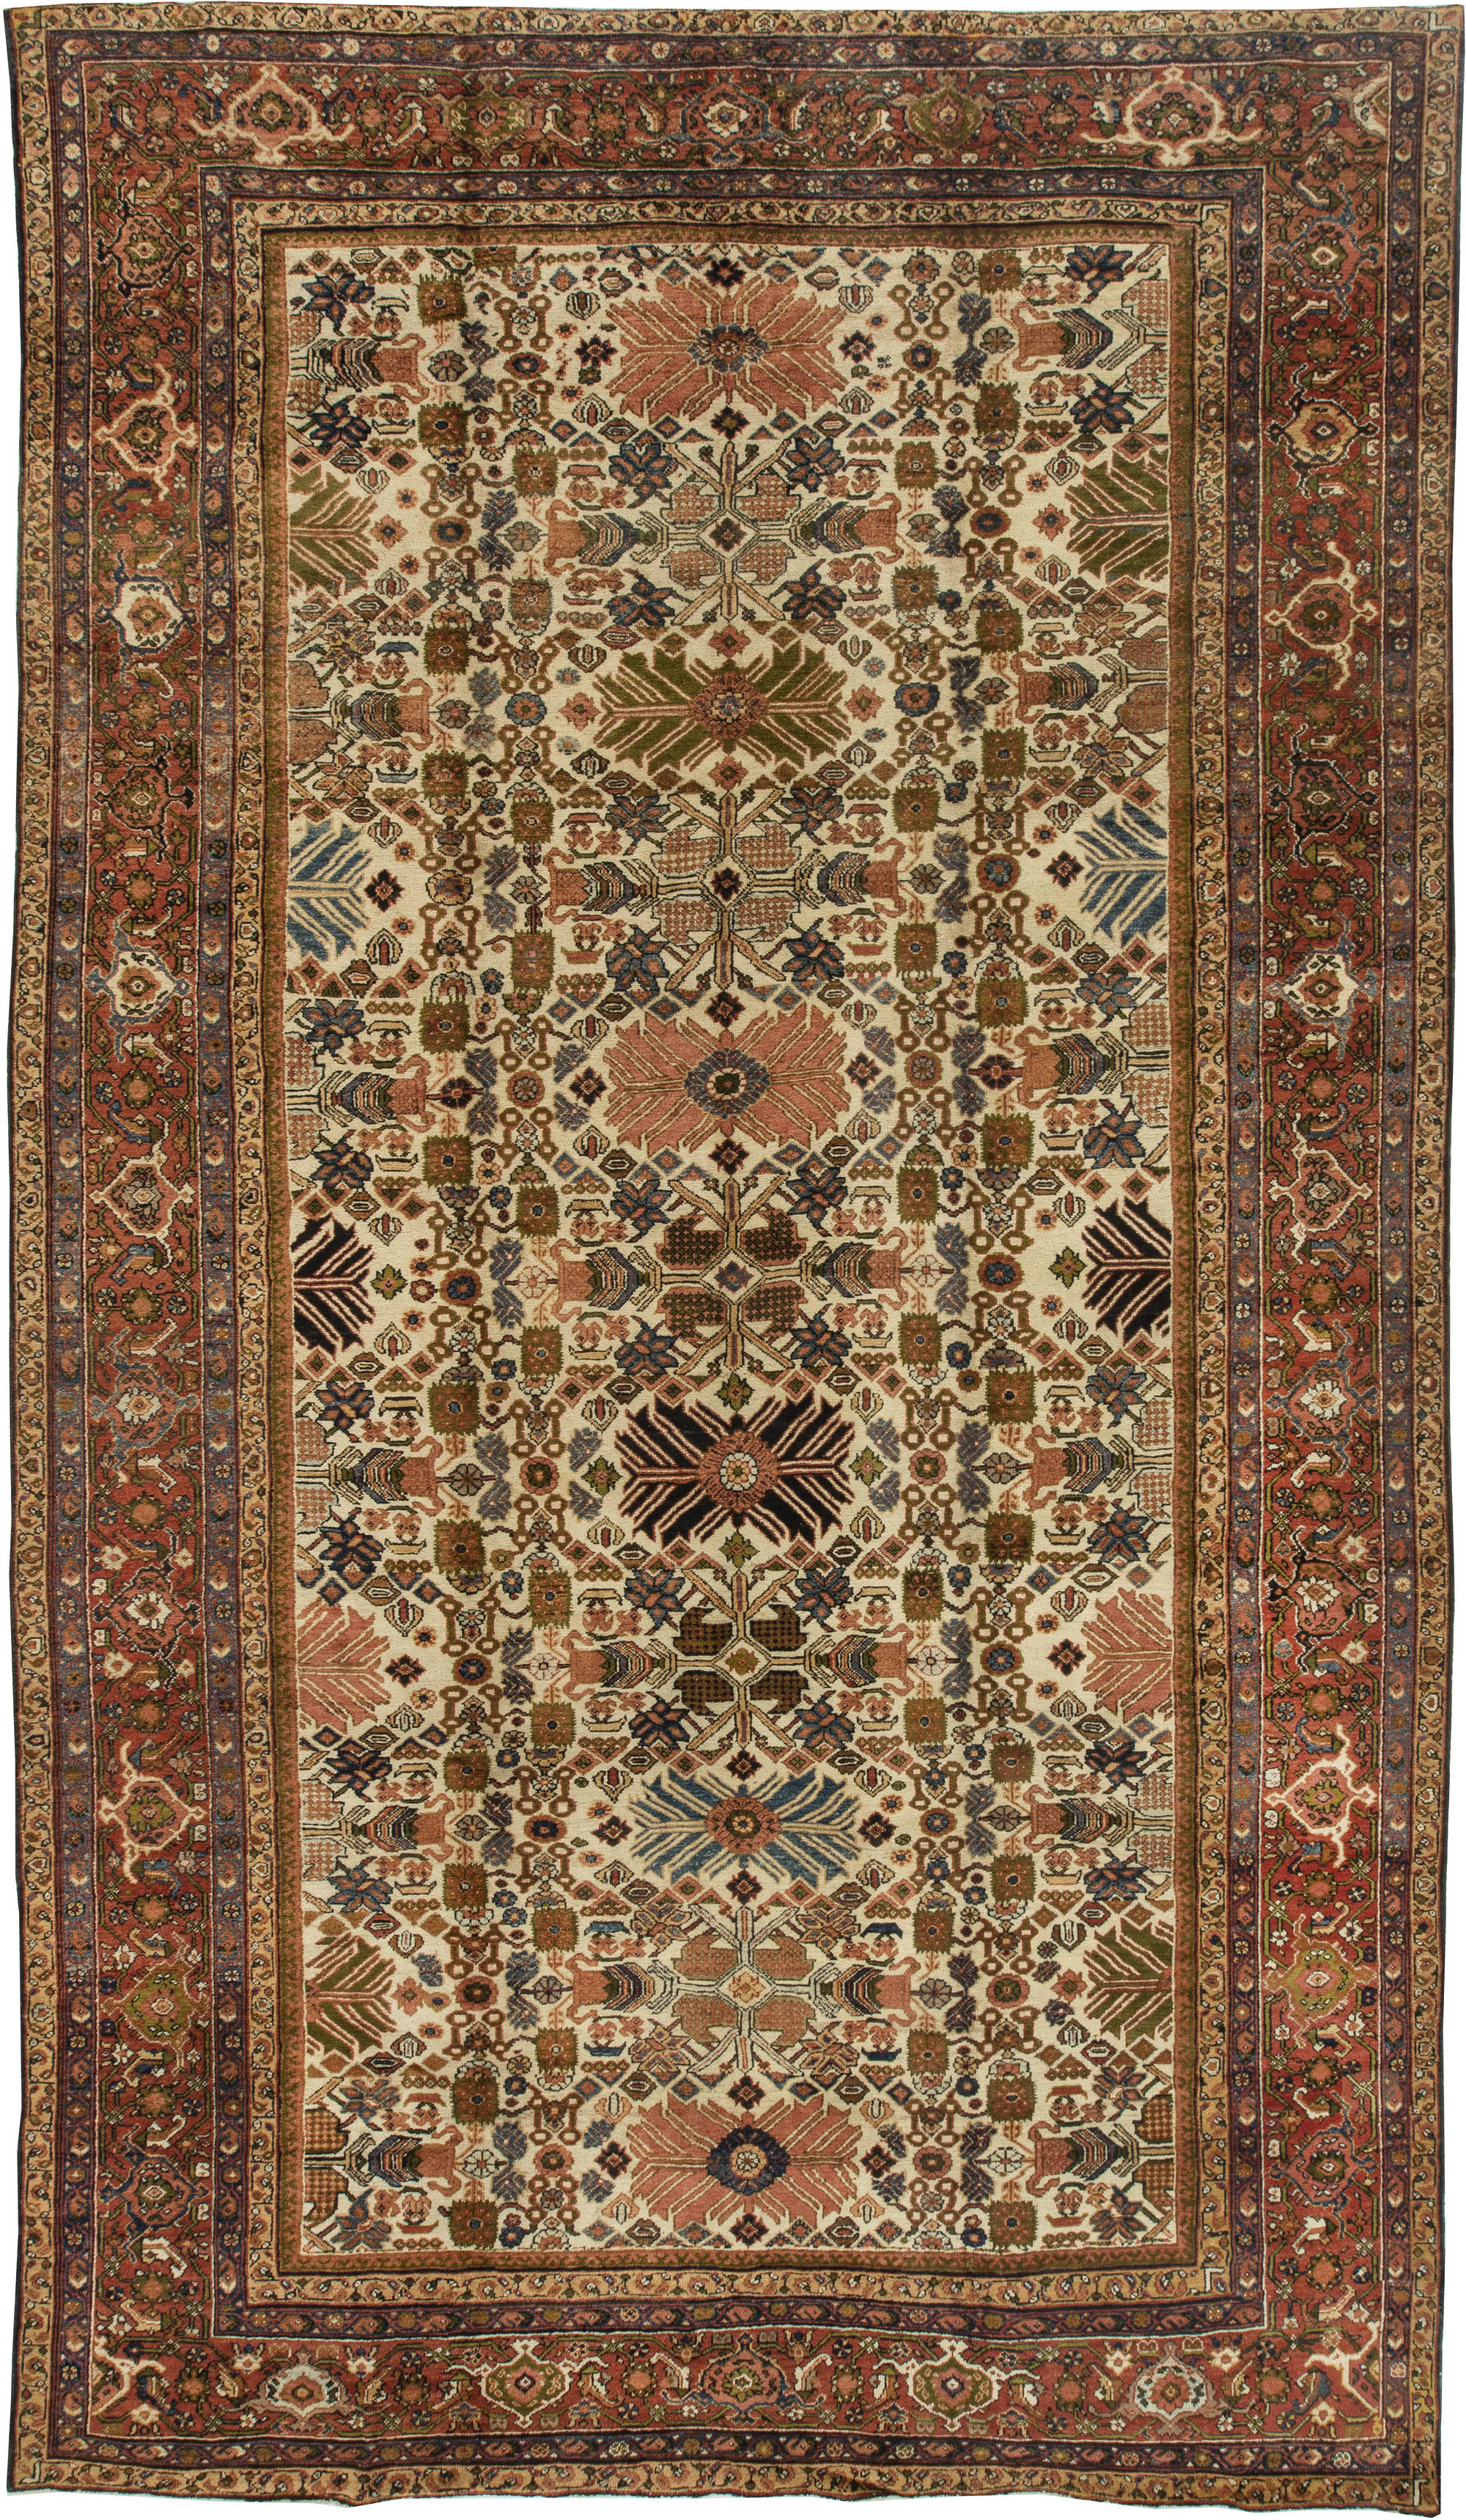 red dp carpet cream oriental com for sale room living rug rugs multiple persian classic tabriz luxury runner style amazon carpets traditional